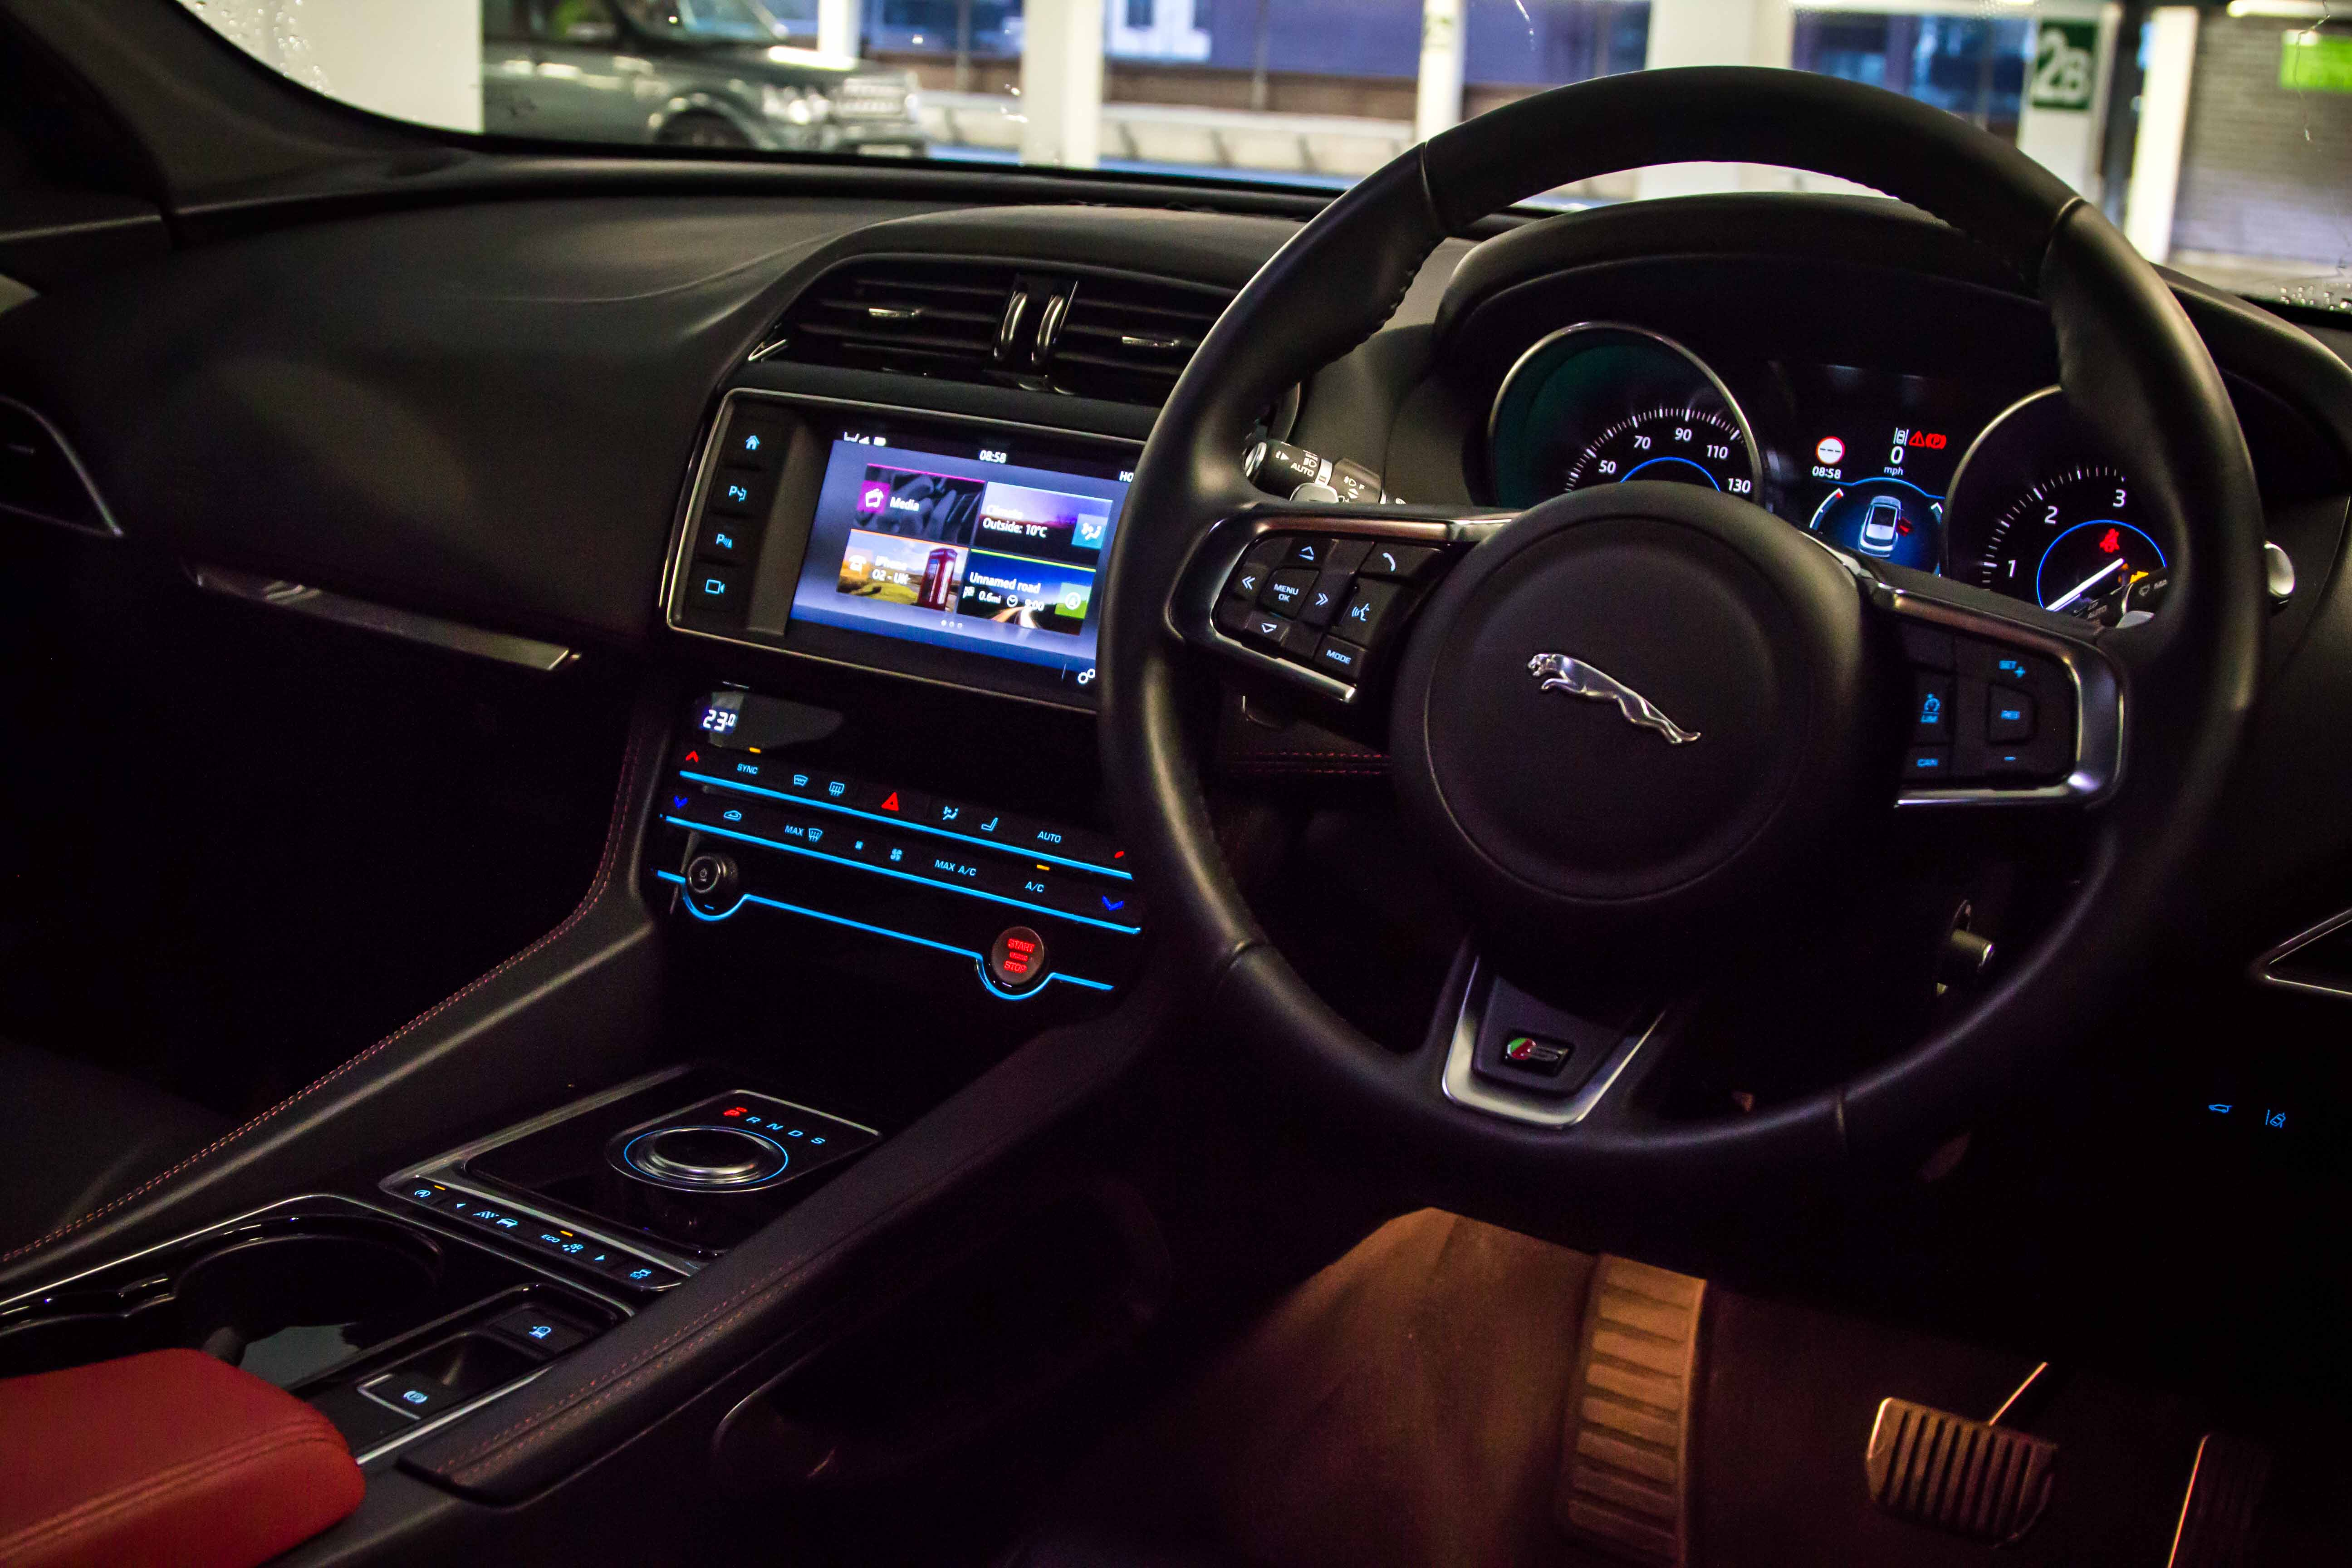 Exclusive Car Wallpapers 2016 Jaguar F Pace S Review Practical Capable And Good